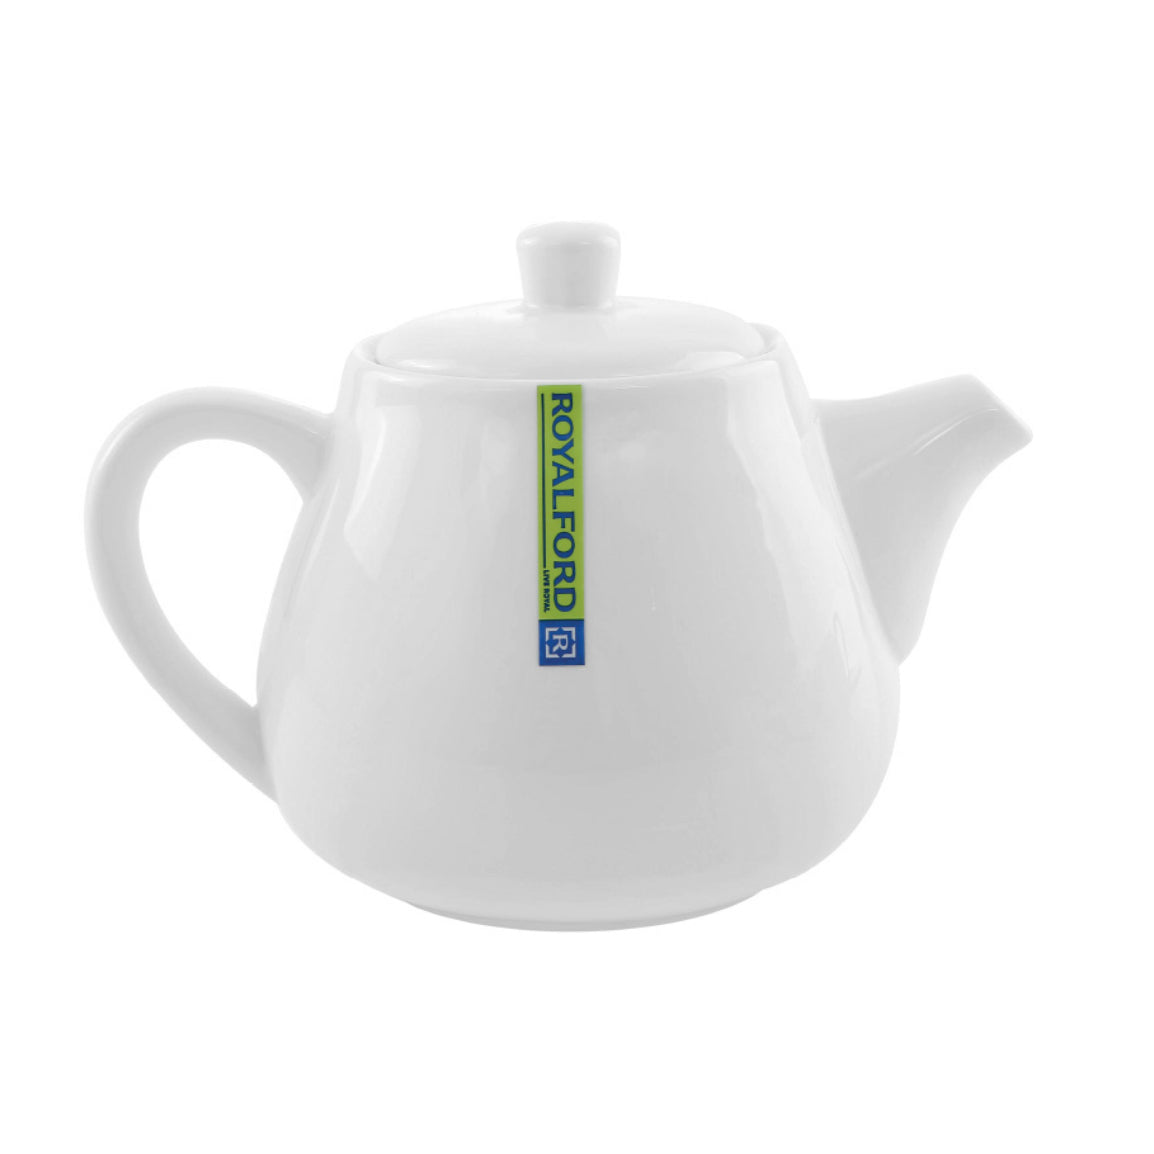 Royalford RF8008 Porcelain Magnesia Big Tea Pot with Lid | Ideal for Daily Use – Minimalist Design, Dishwasher, Microwave and Freezer Safe - Smooth Surface, Comfortable Grip and Lightweight